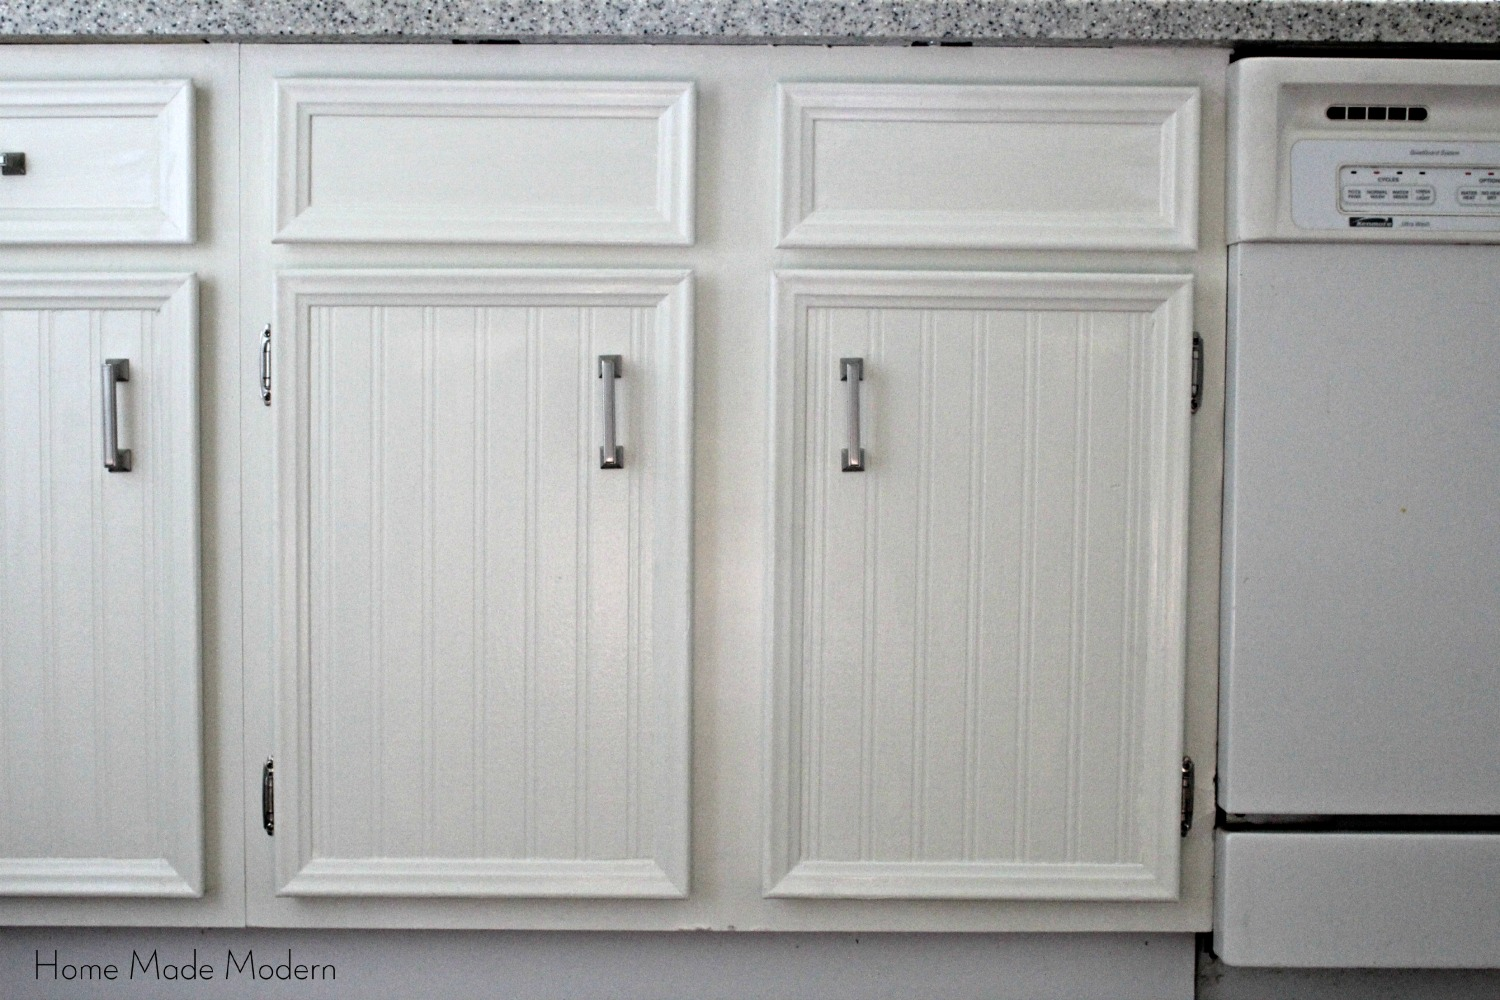 , but very effective IMO, way to update your kitchen cabinets